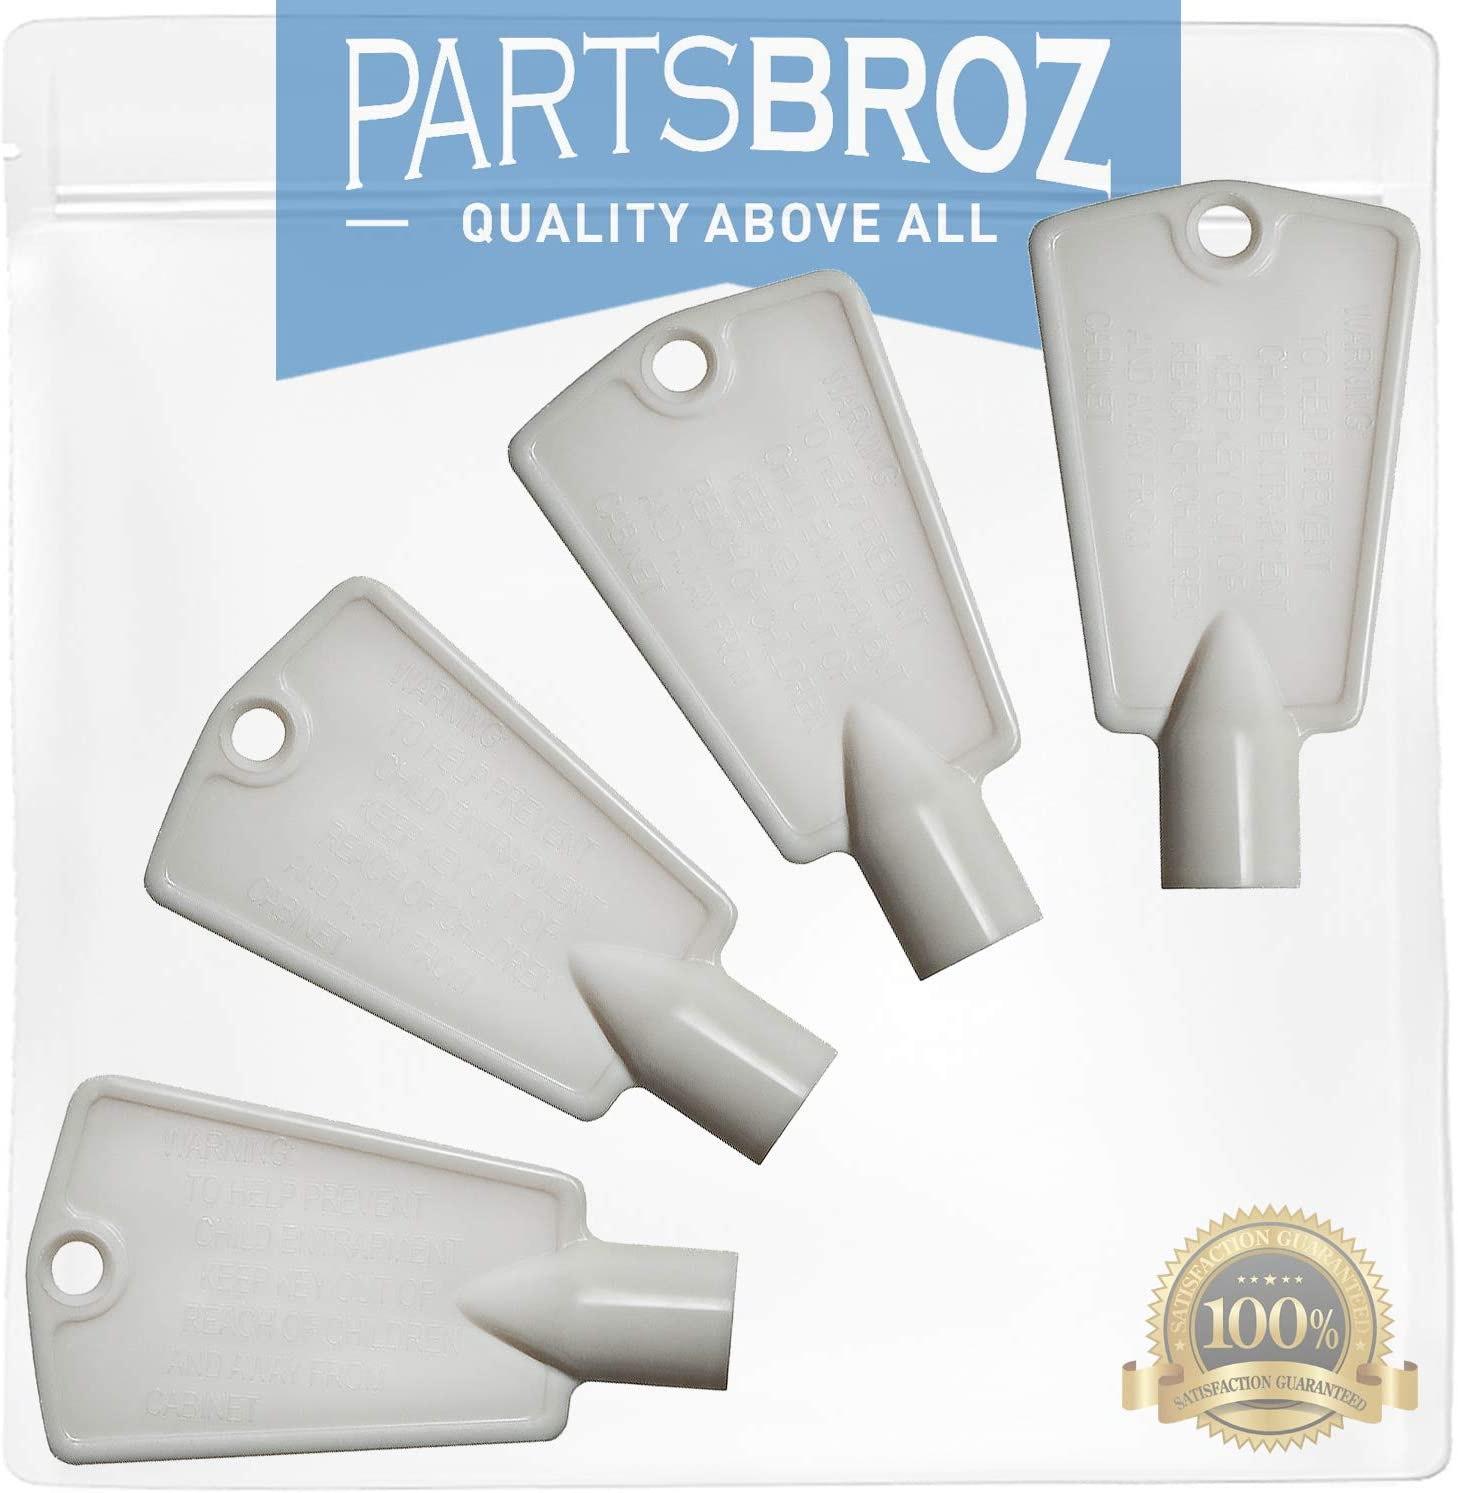 297147700 (4-Pack) Freezer Door Keys for Frigidaire Freezers by PartsBroz - Replaces AP4301346, 216702900, 06599905, 08037402, 1259502, 216388700, 5308027402, 5308037402, 6599905, PS1991481